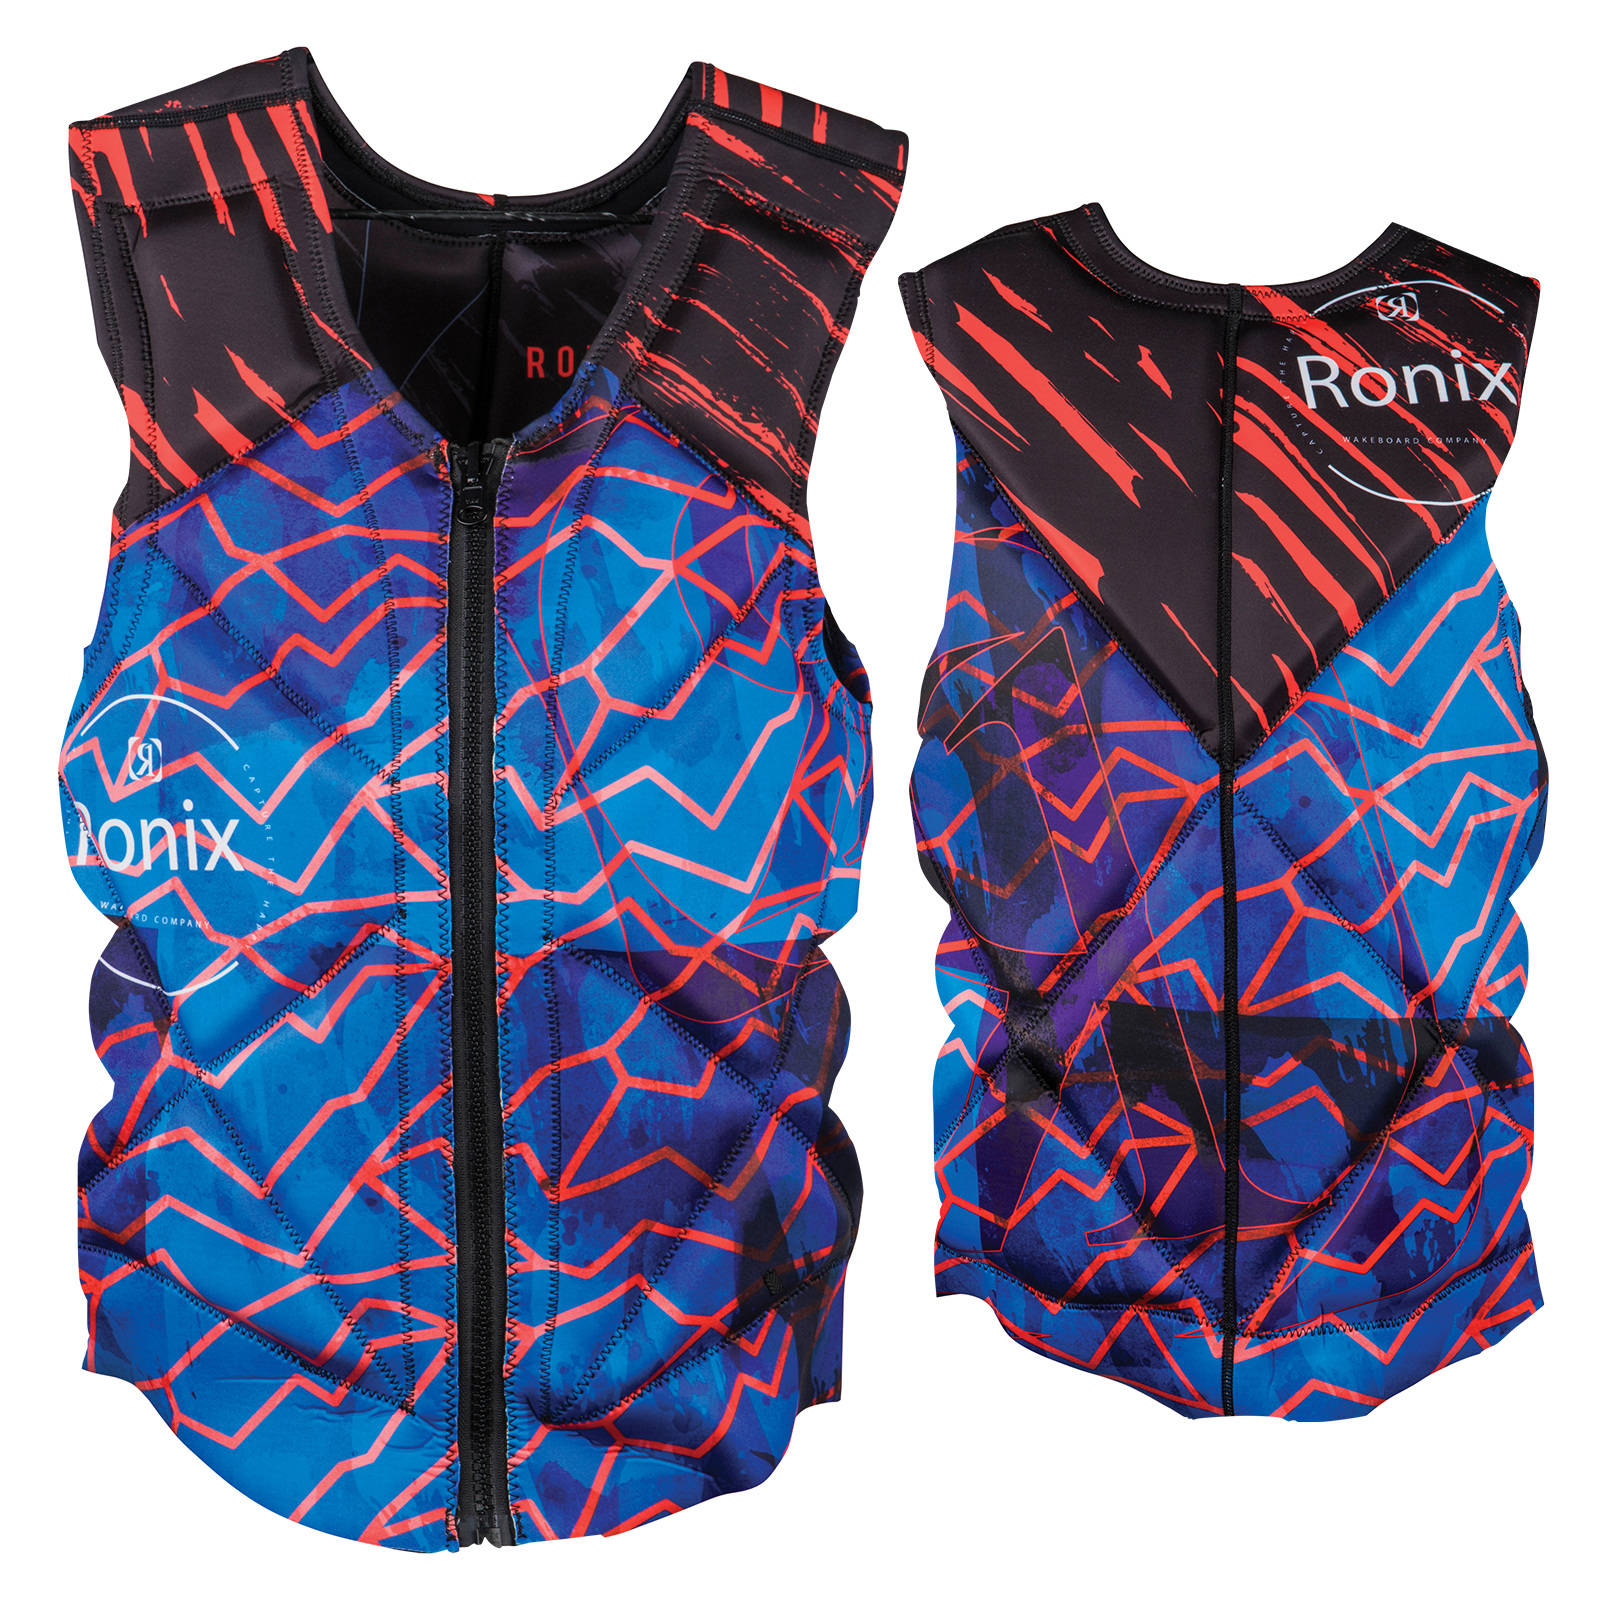 PARTY ATHLETIC CUT REVERSIBLE VEST RONIX 2018